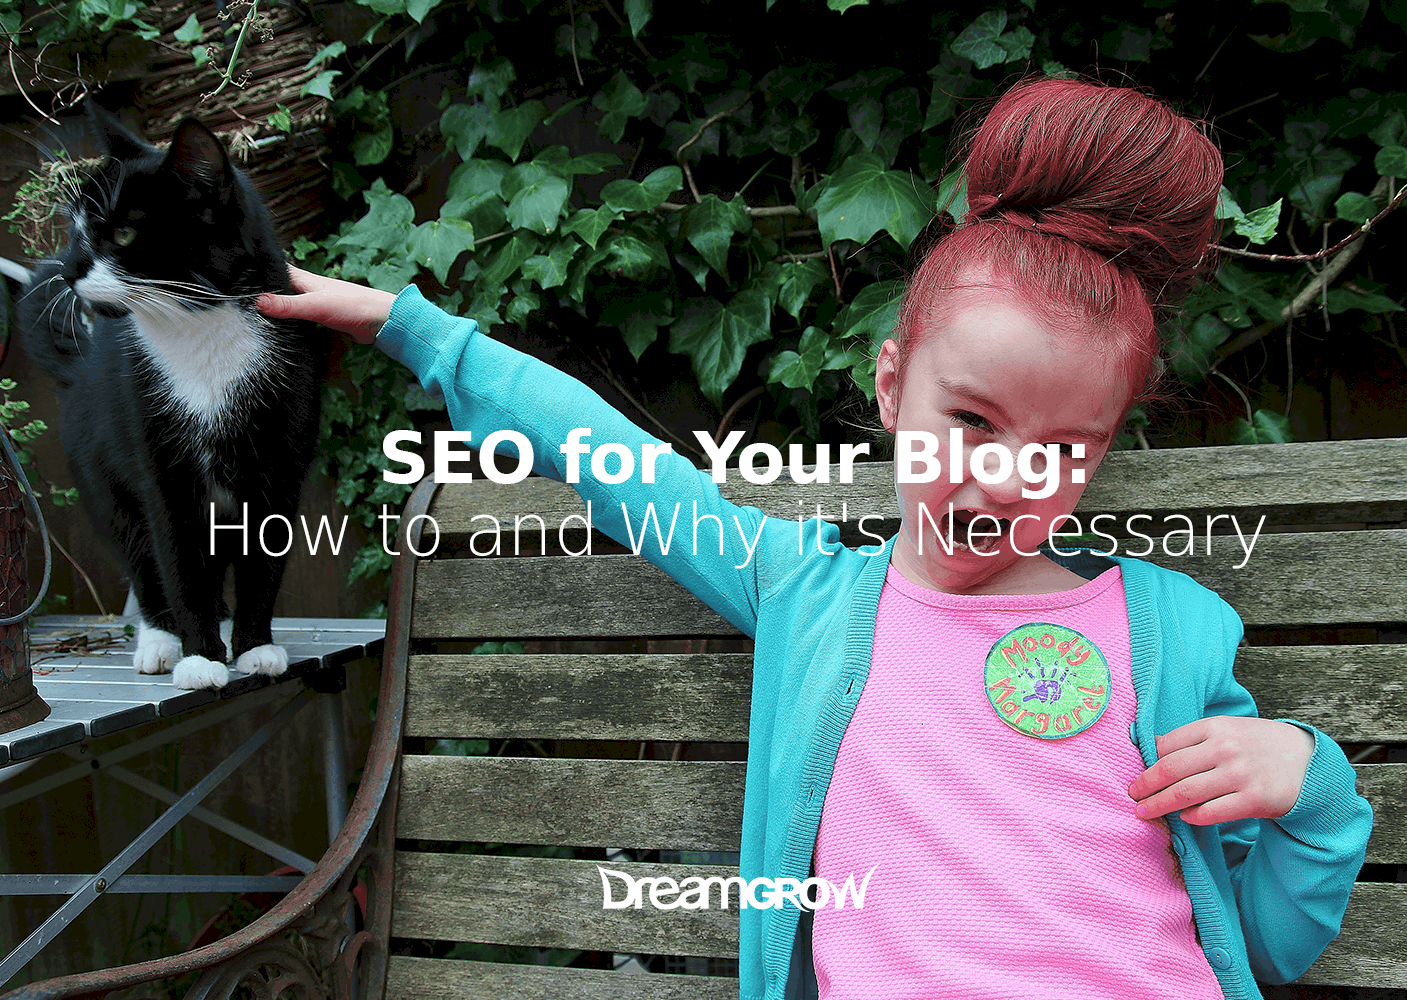 seo-for-blog-dreamgrow